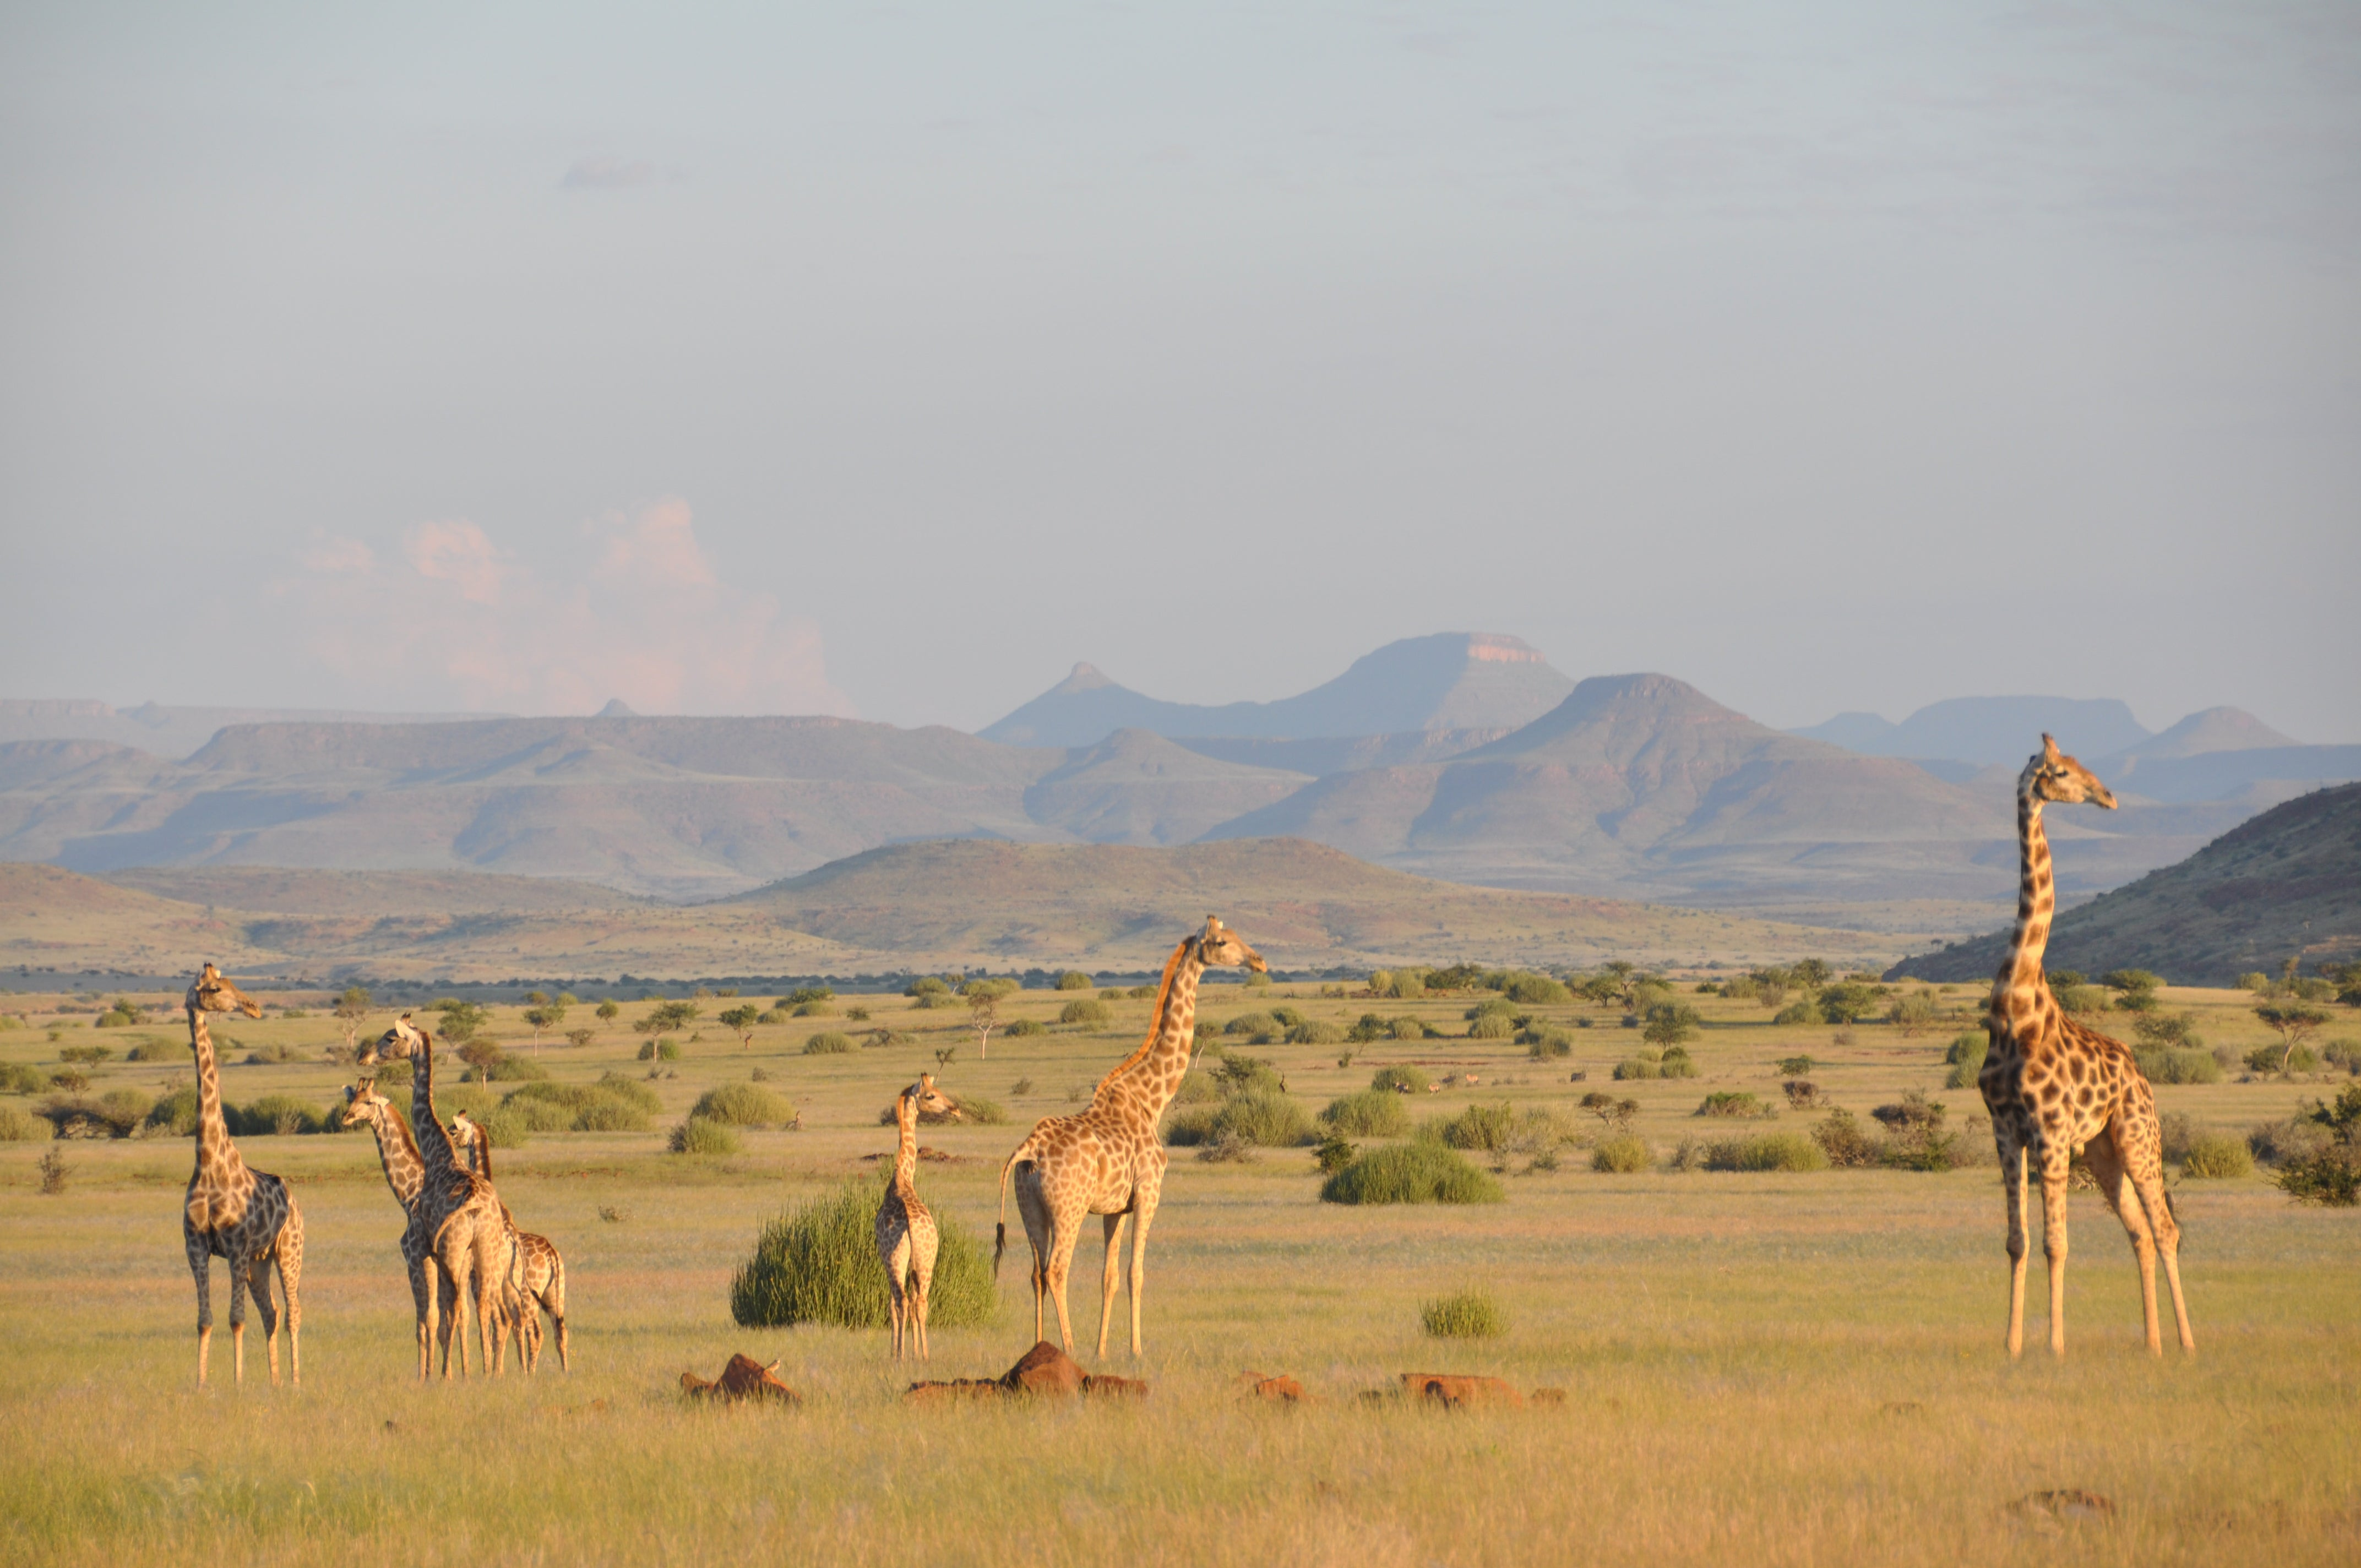 We Just Found Out There's More Than One Species of Giraffe